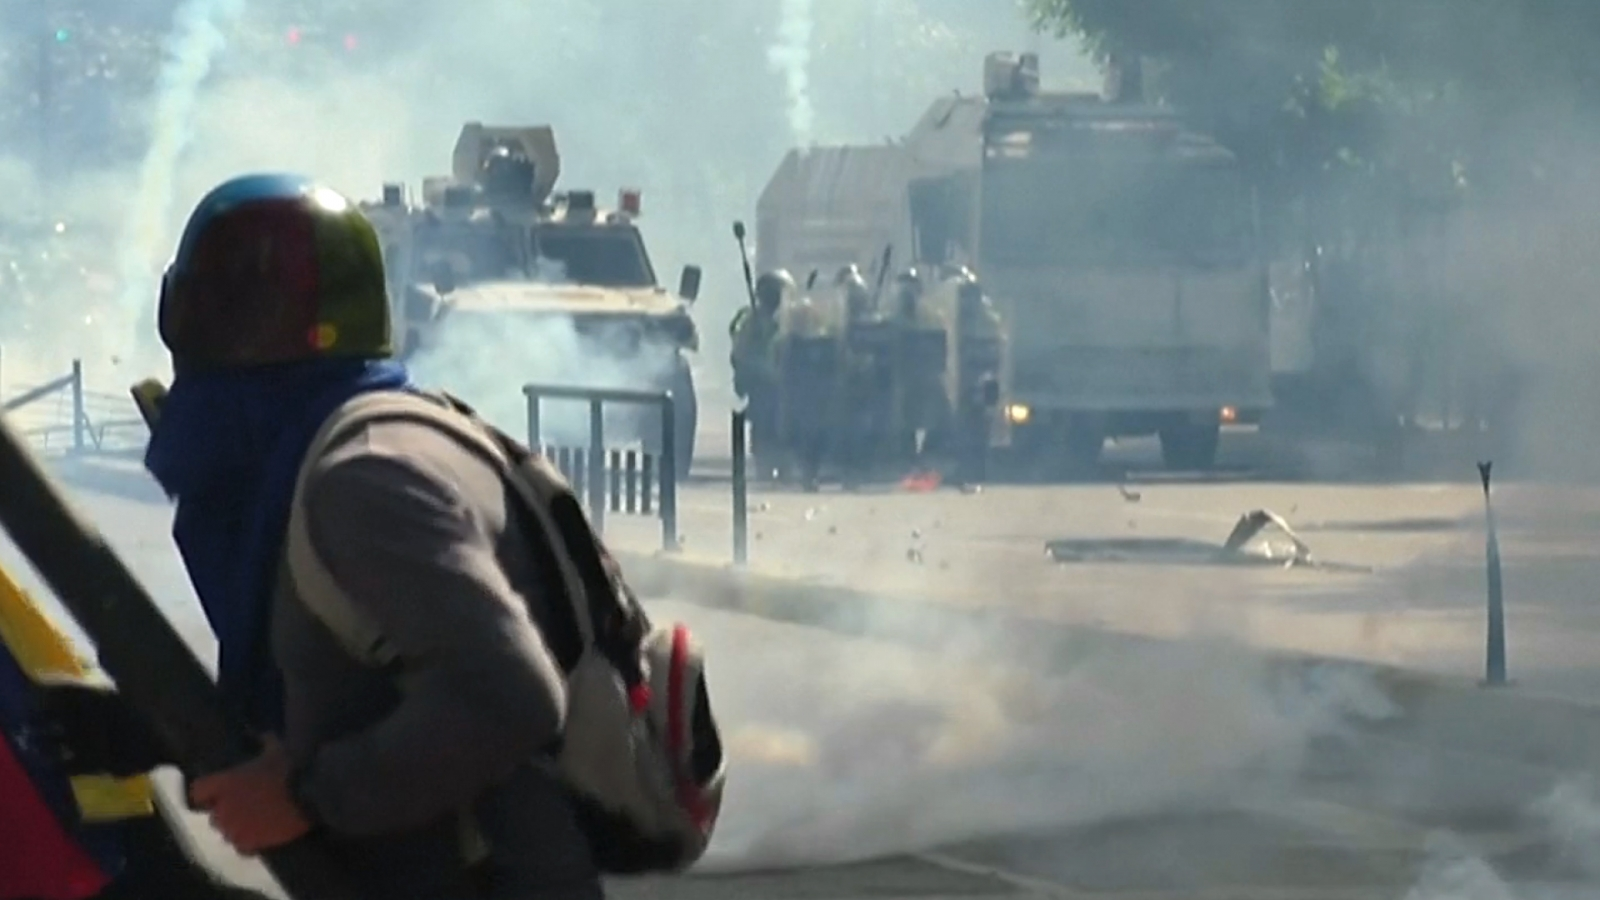 Violent Clashes In Venezuela As Anti-Government Protests Enter 50th Day